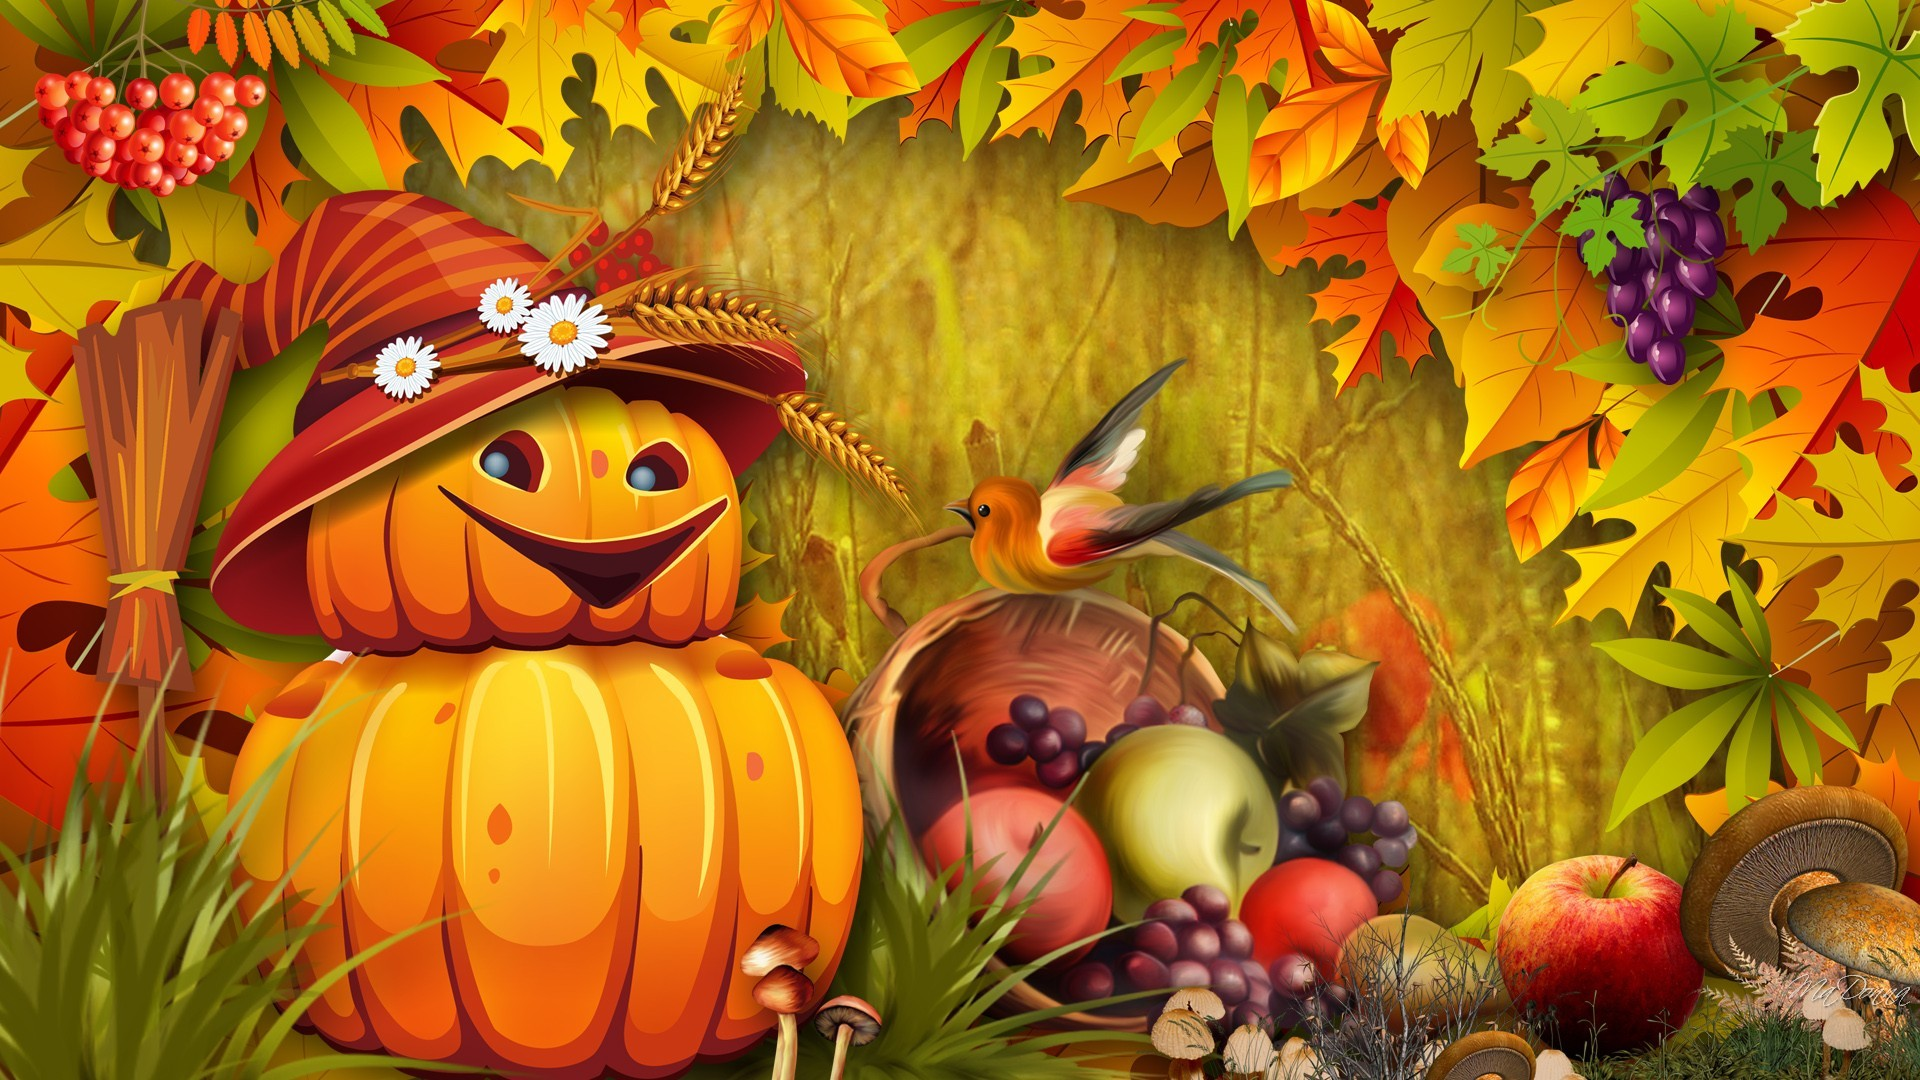 autumn wallpaper with pumpkins | Fall Leaves Pumpkins